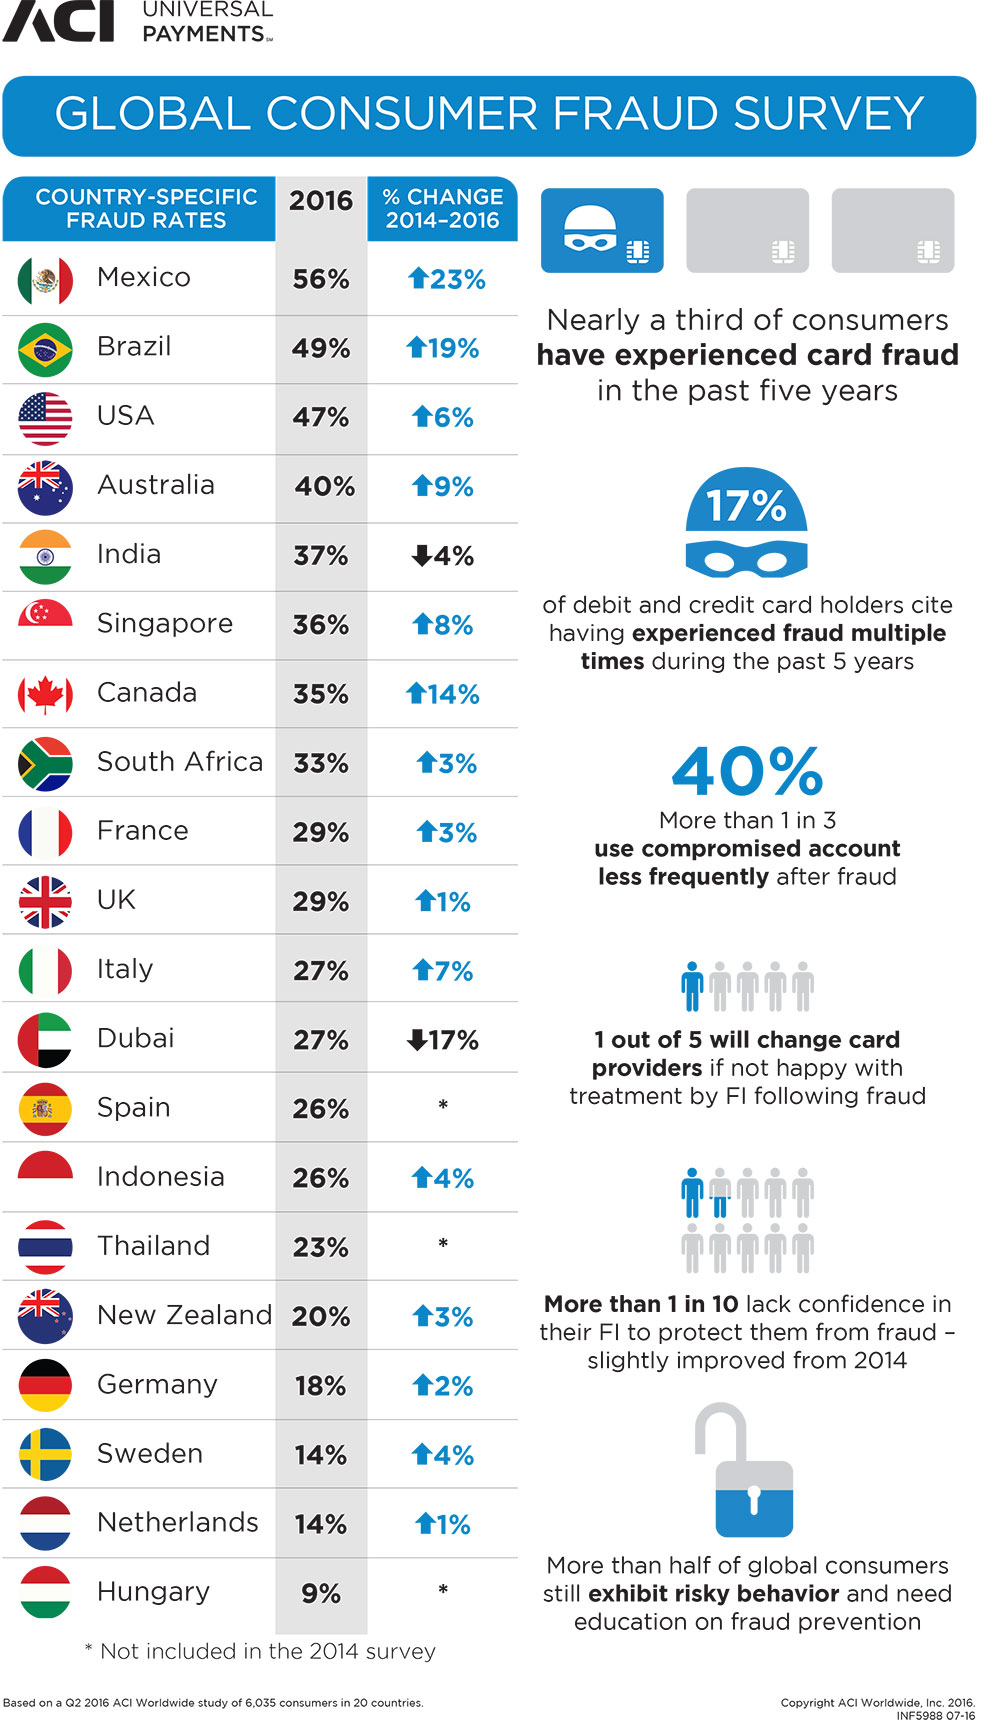 ACI-Global-Consumer-Fraud-Survey-2016-Infographic